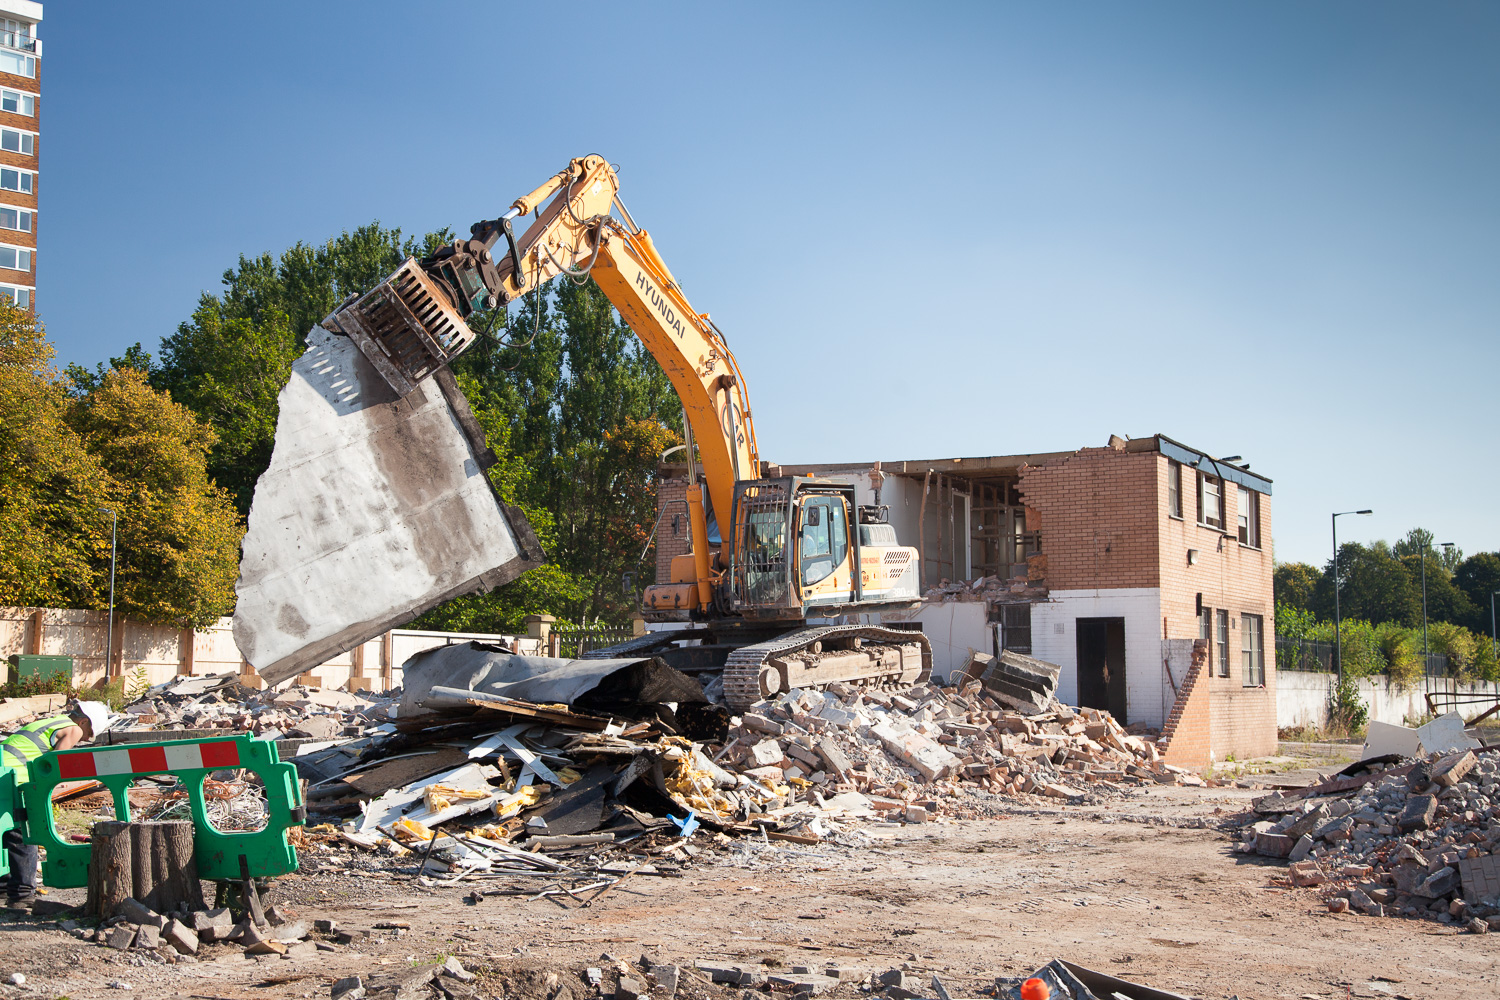 Gt Homer St Demolition_21_©Matthew Nichol Photography.jpg